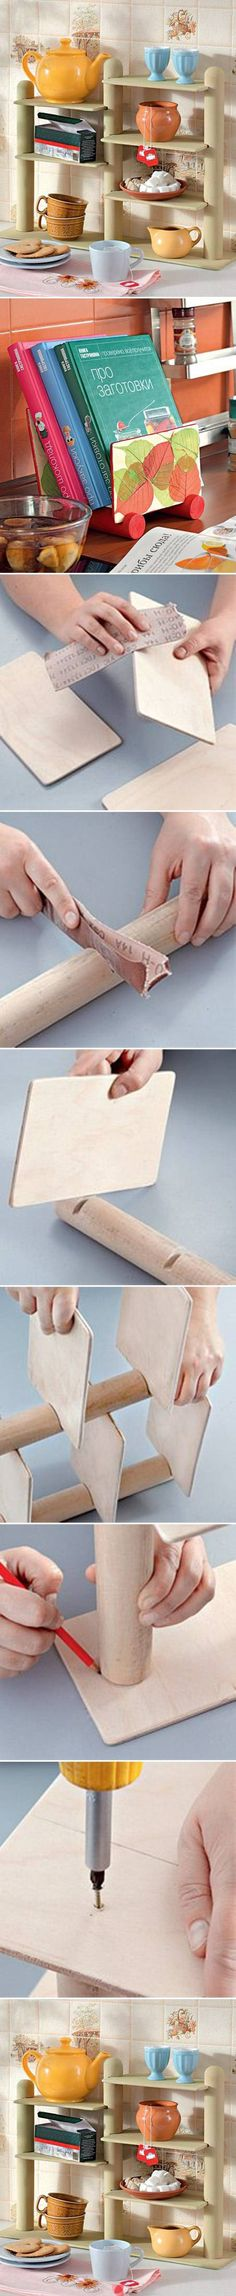 DIY Organizing idea